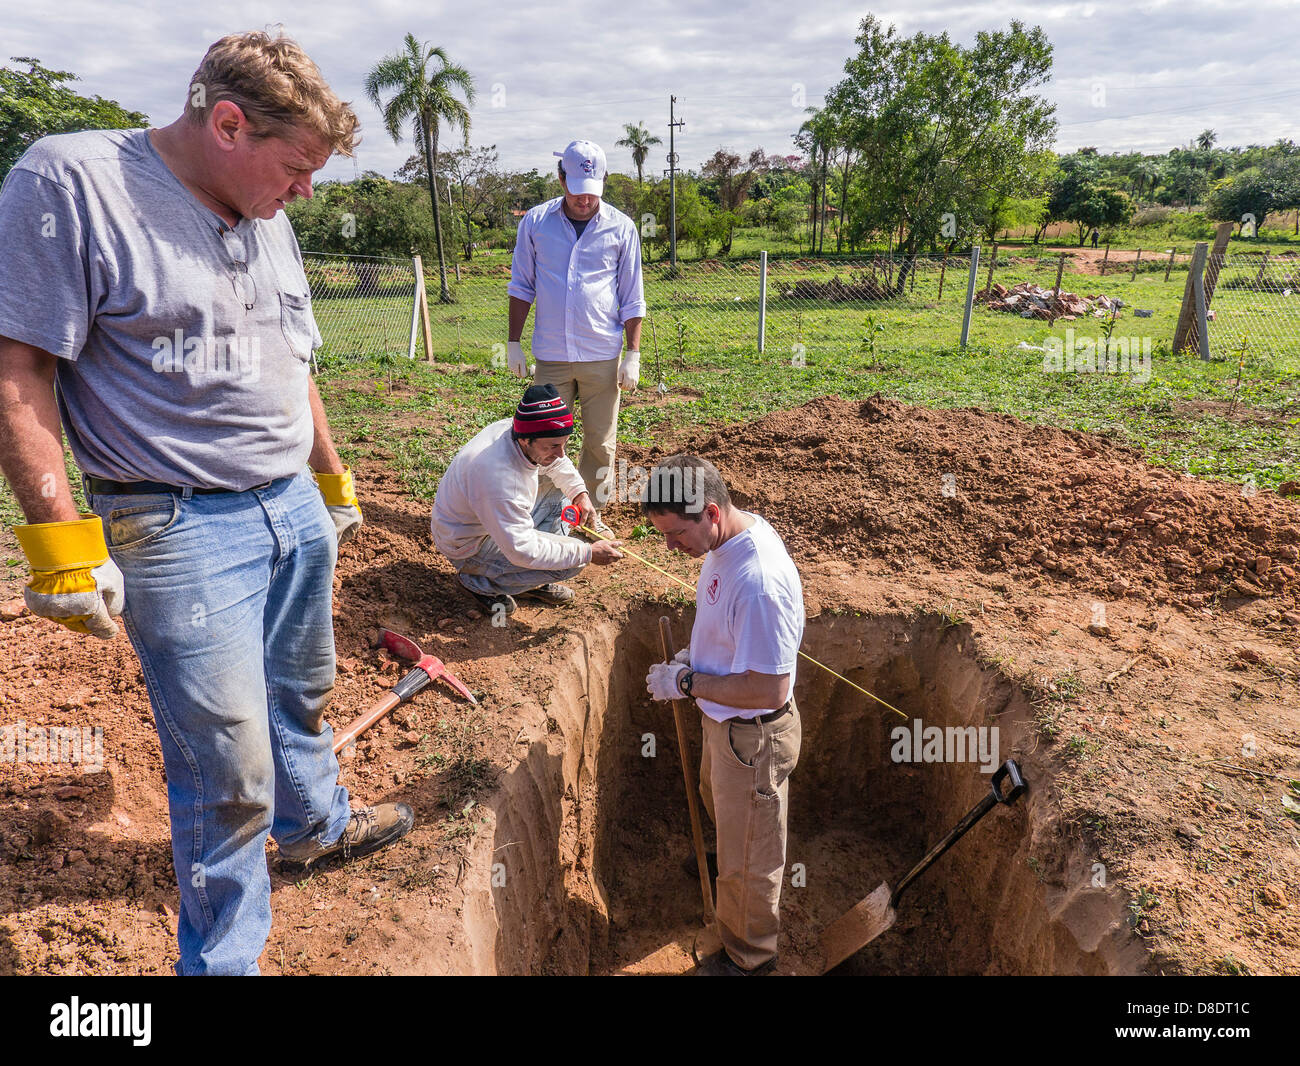 Four male workers, three Caucasians and one Hispanic take measurements as they dig a septic tank at a new home building - Stock Image